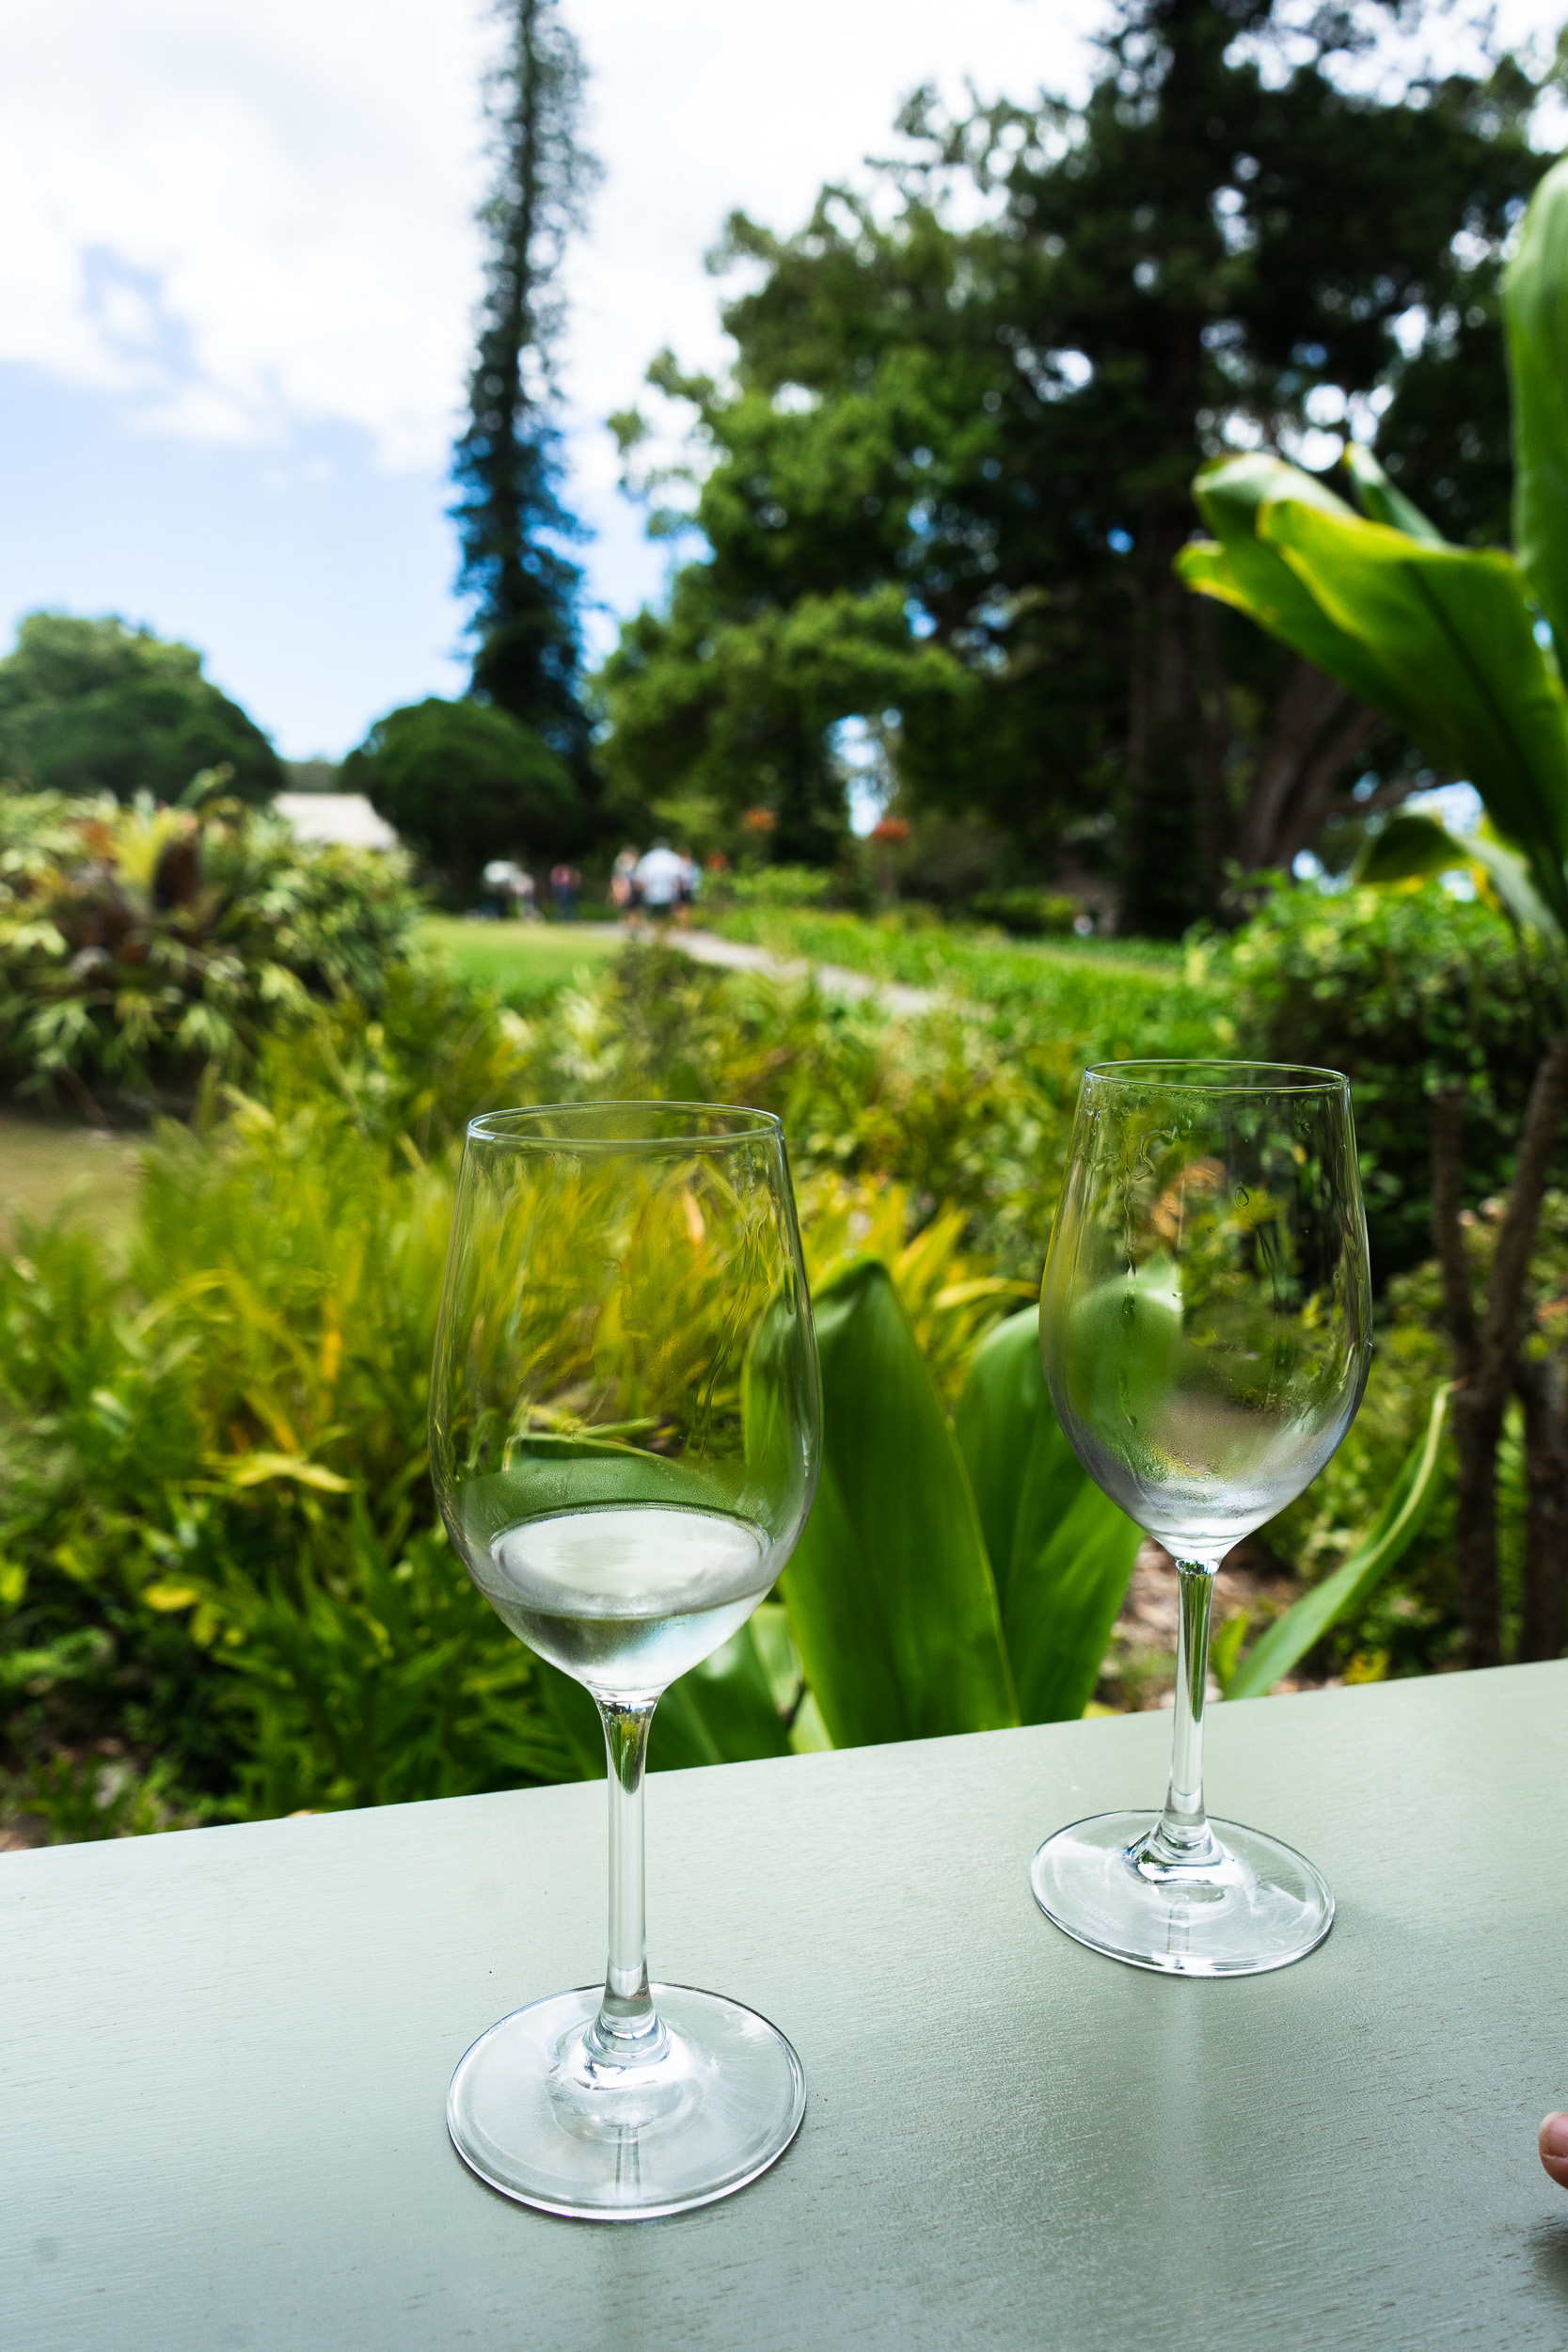 Maui Wine. Tips, tricks, and things to do in Maui, Hawaii. The ultimate travel guide along with rare, locals only secrets